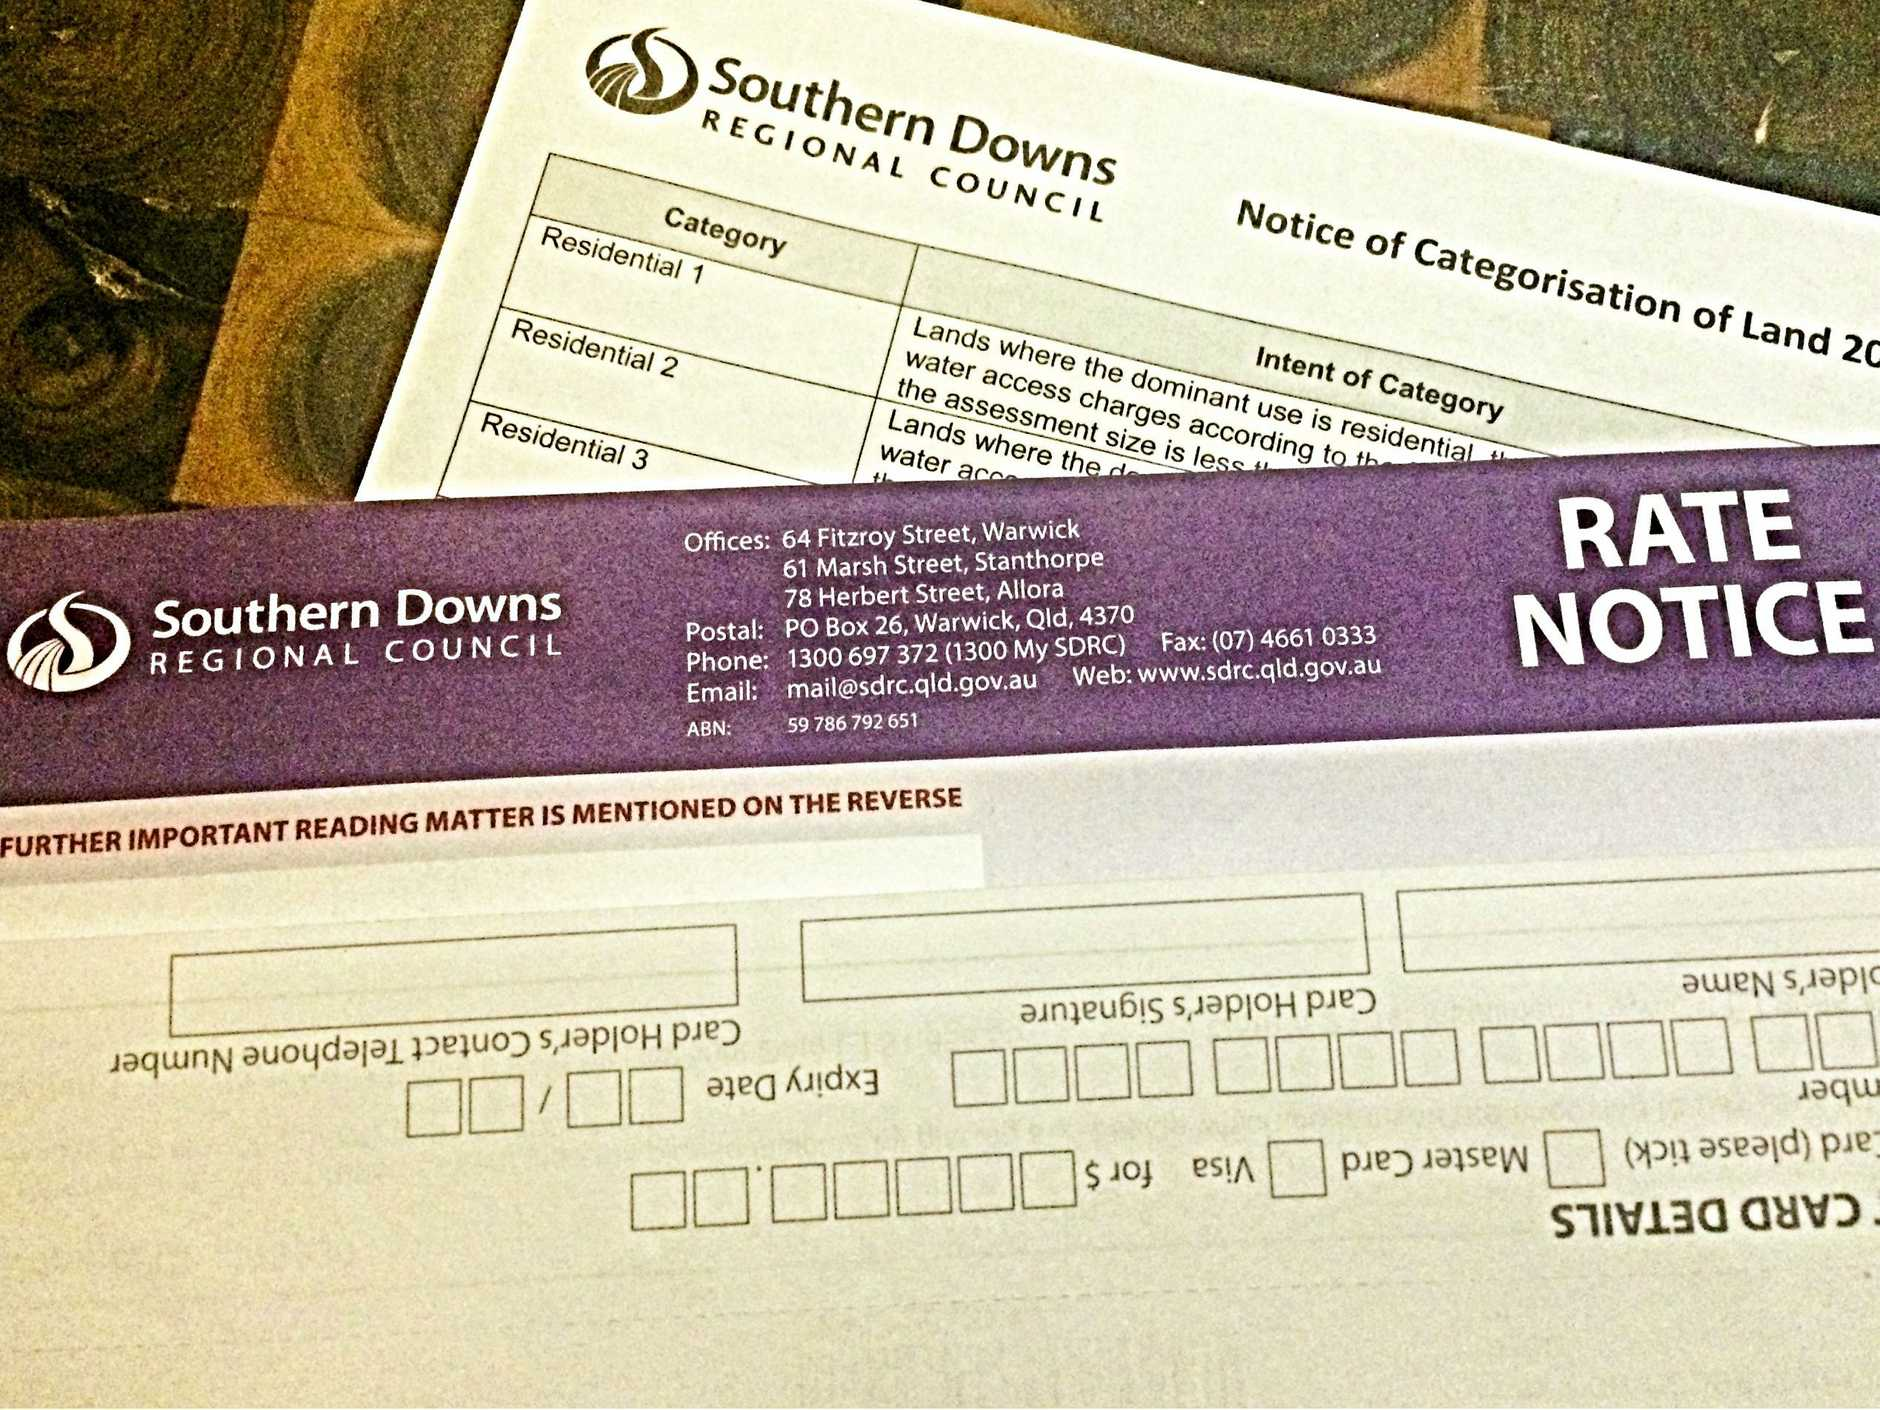 Rates notices should be arriving in your mail box as we speak.